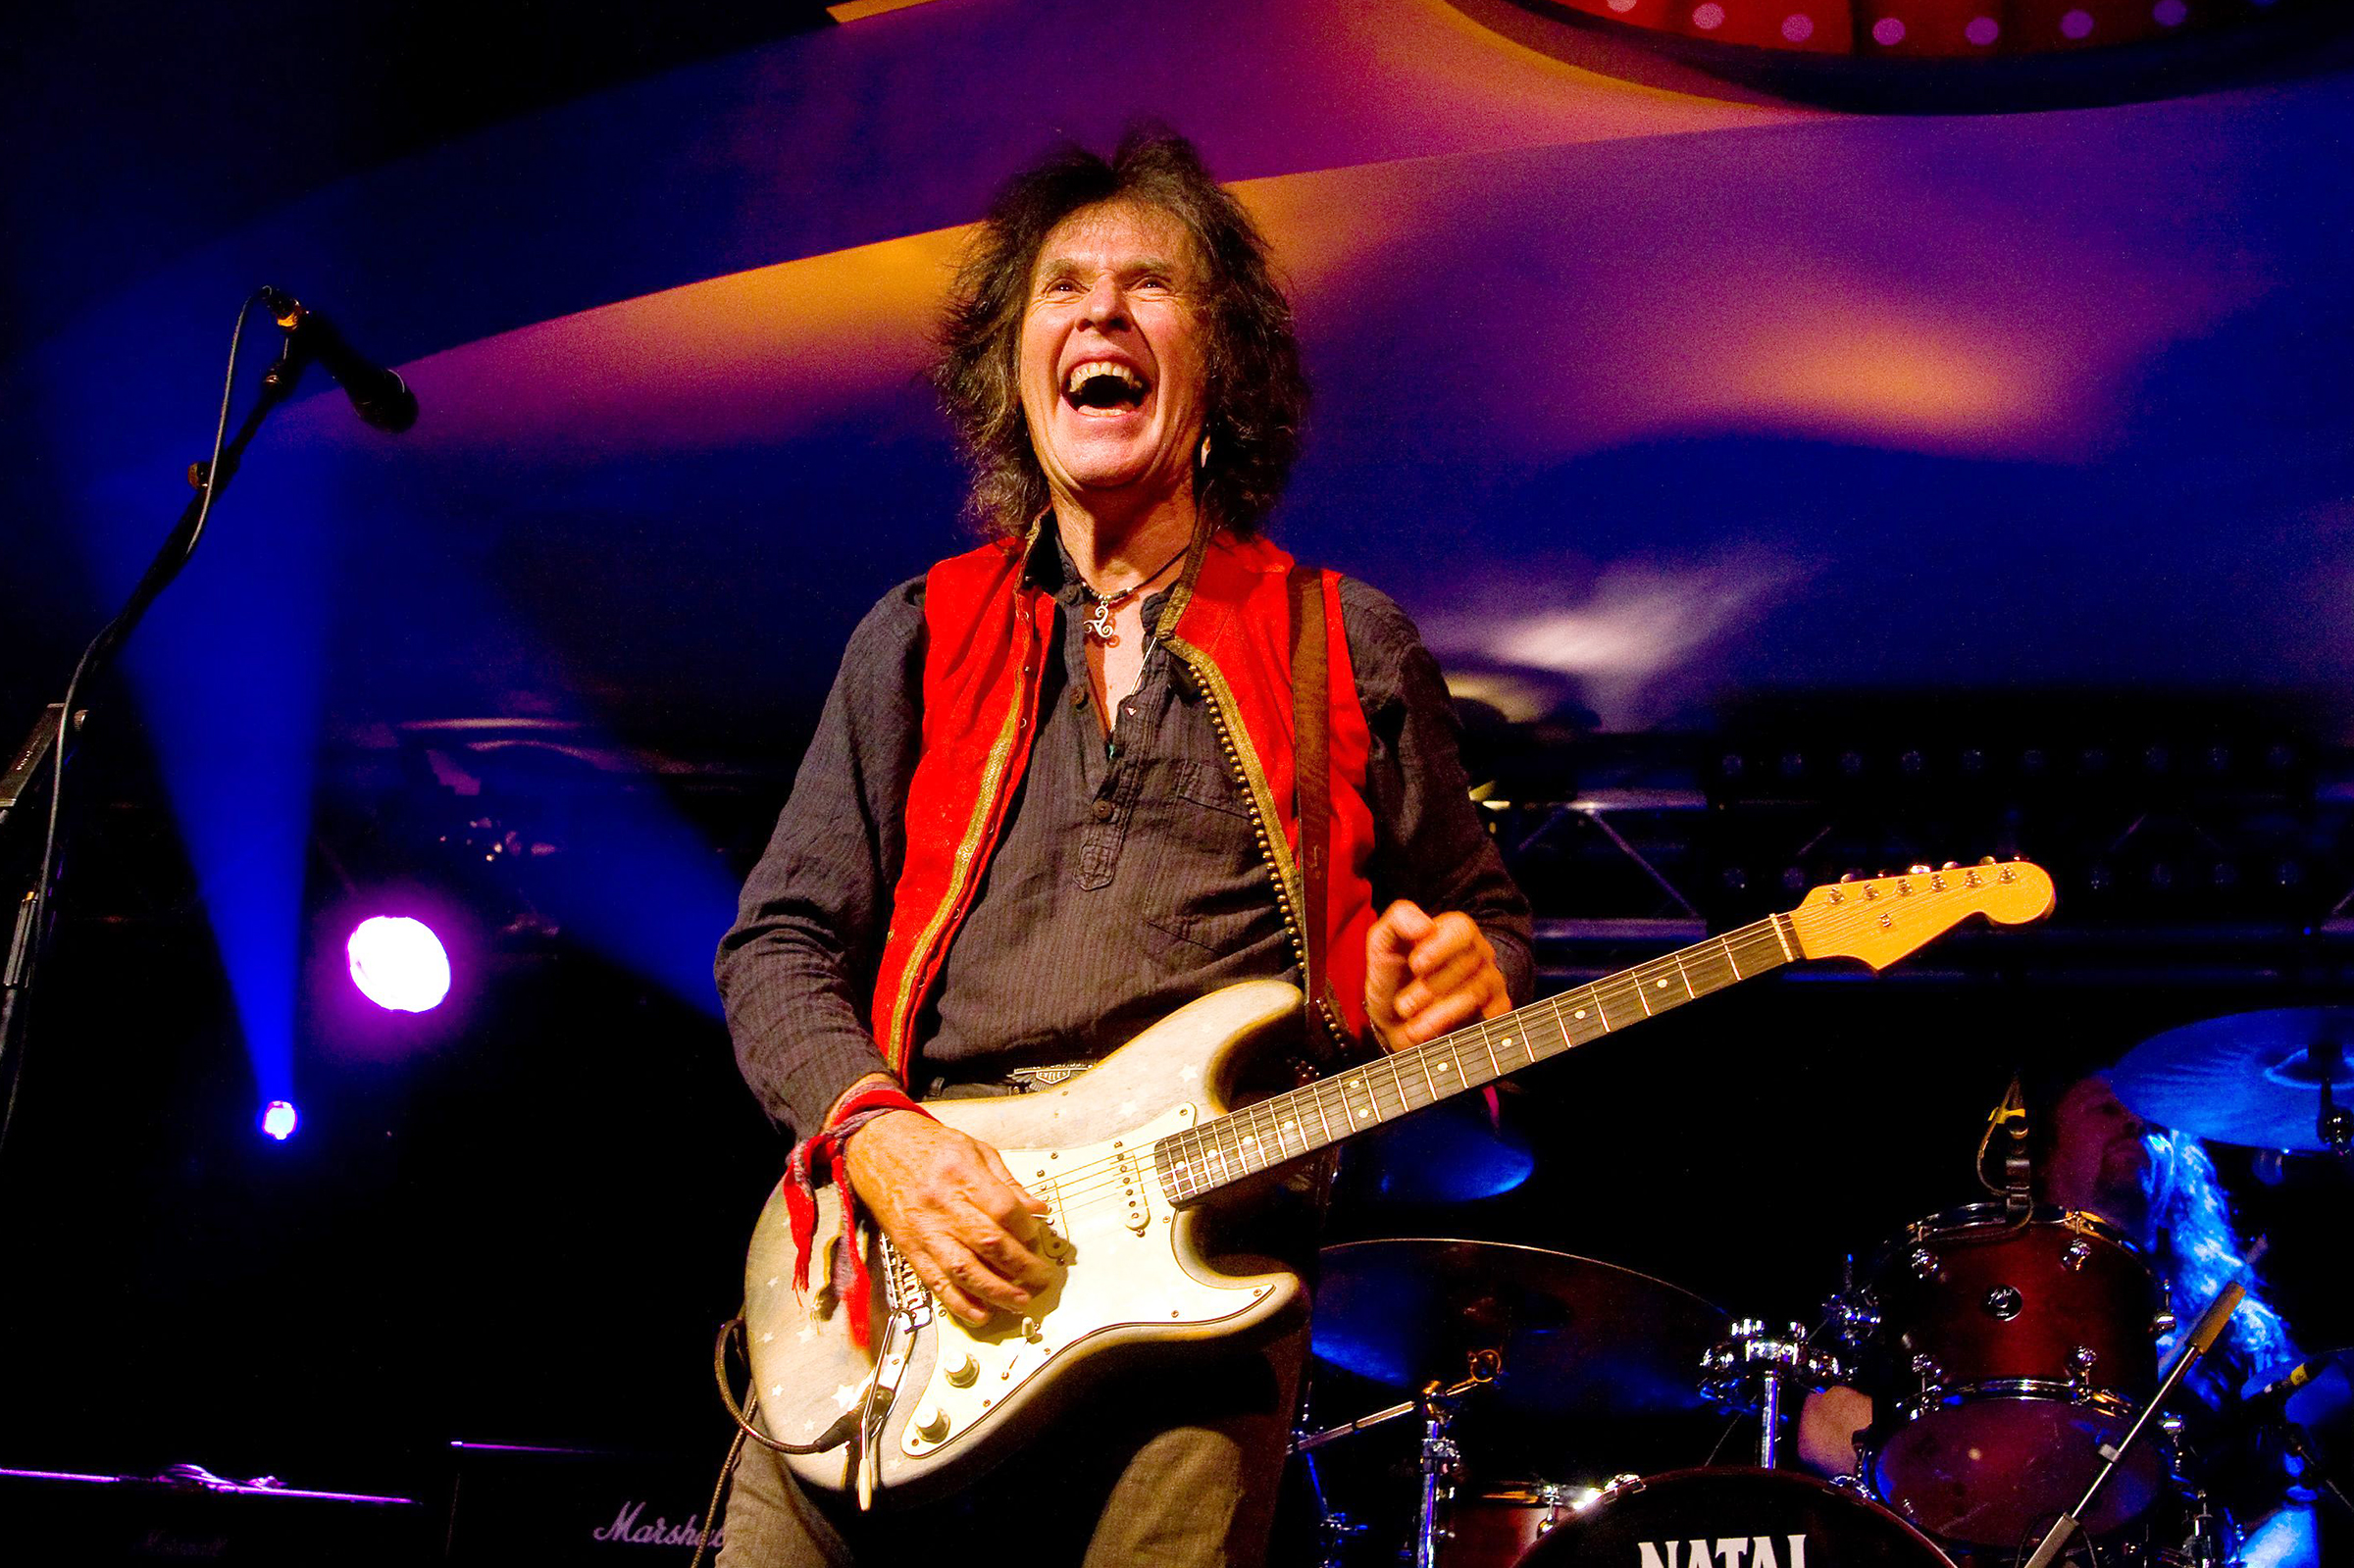 IMG BERNIE TORME, Irish Rock Guitarist, Singer, Songwriter